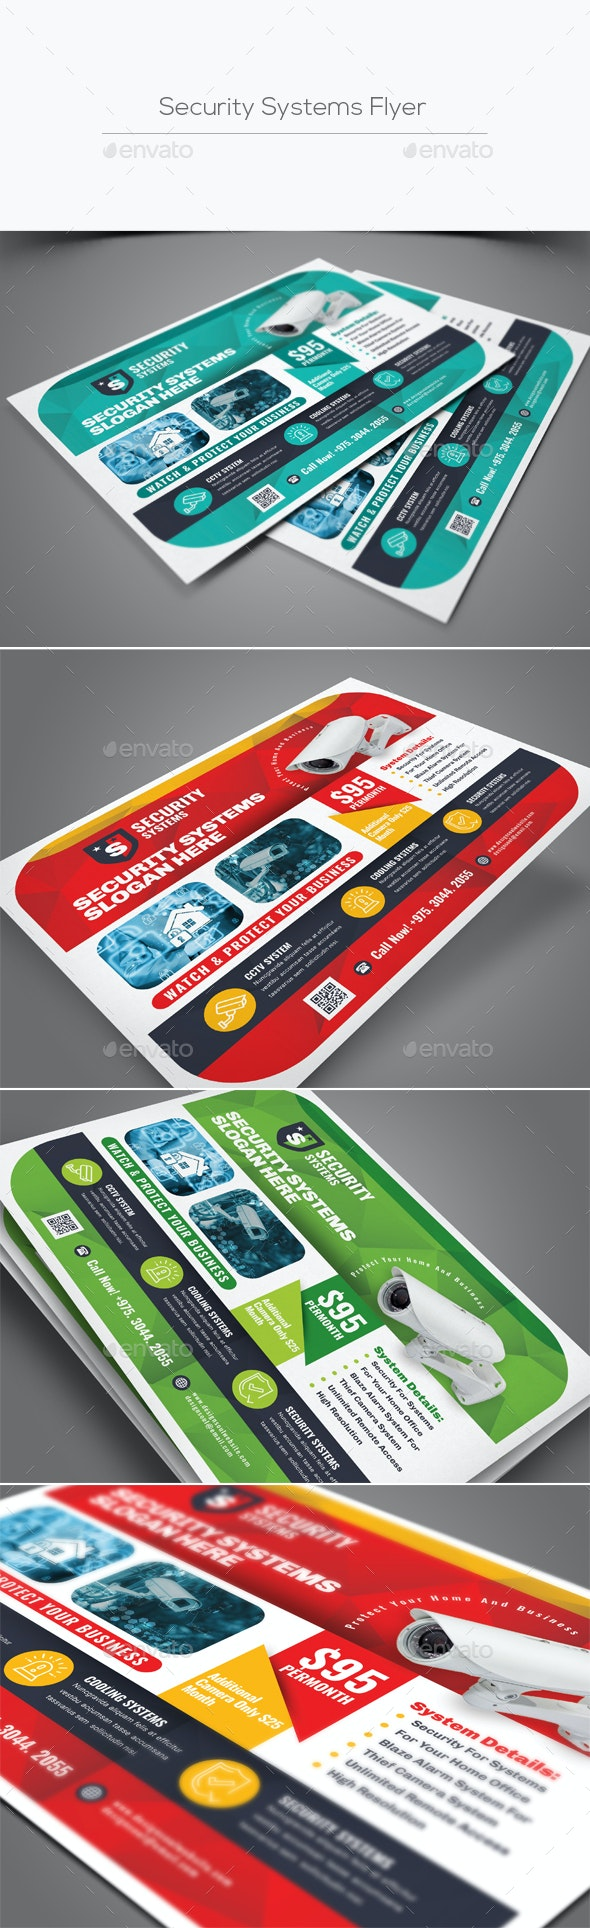 Security Systems Flyer - Corporate Flyers